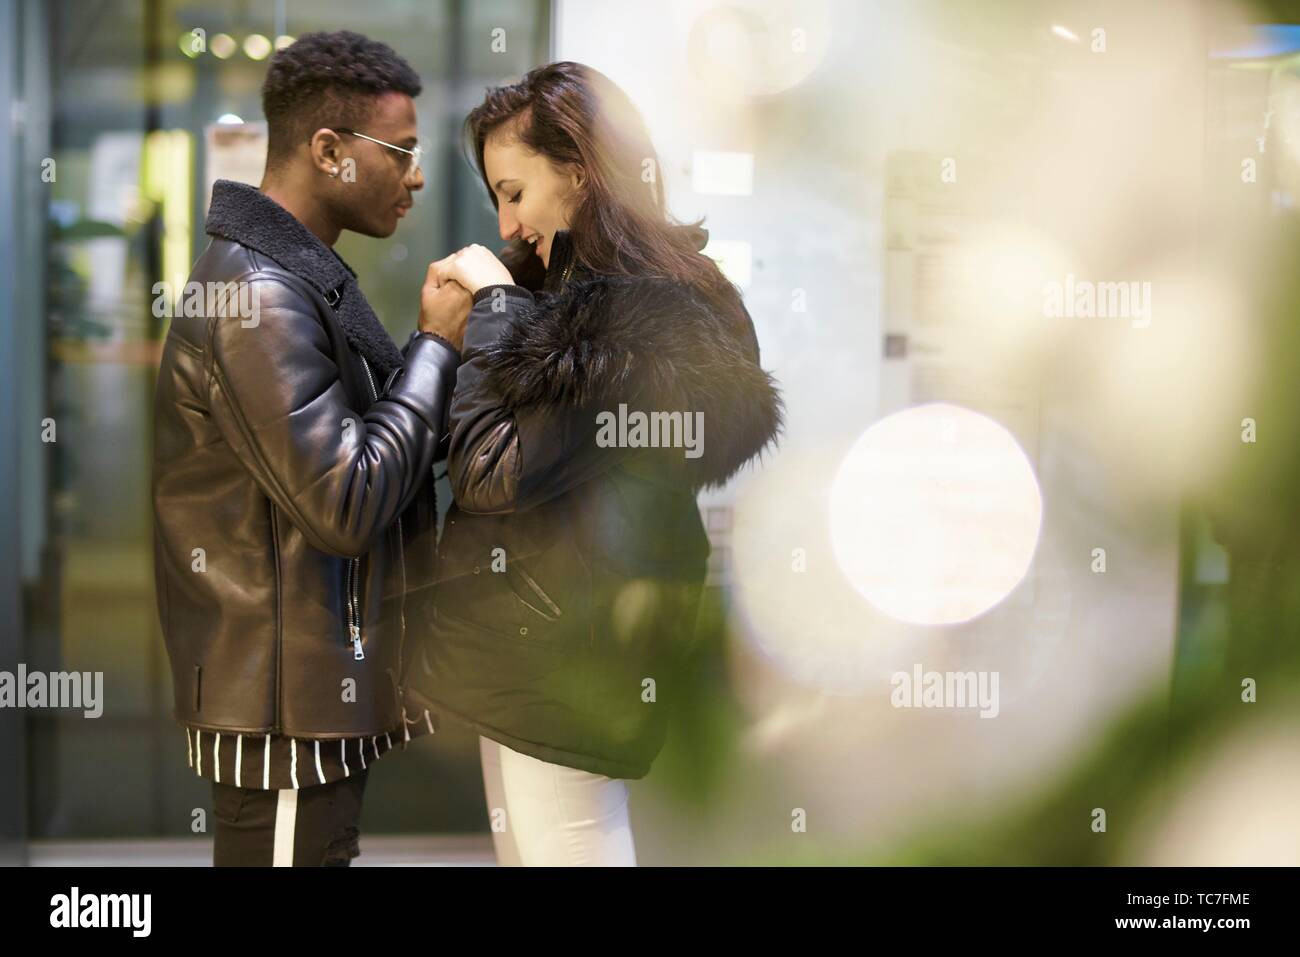 couple holding hands, in Munich, Germany Stock Photo